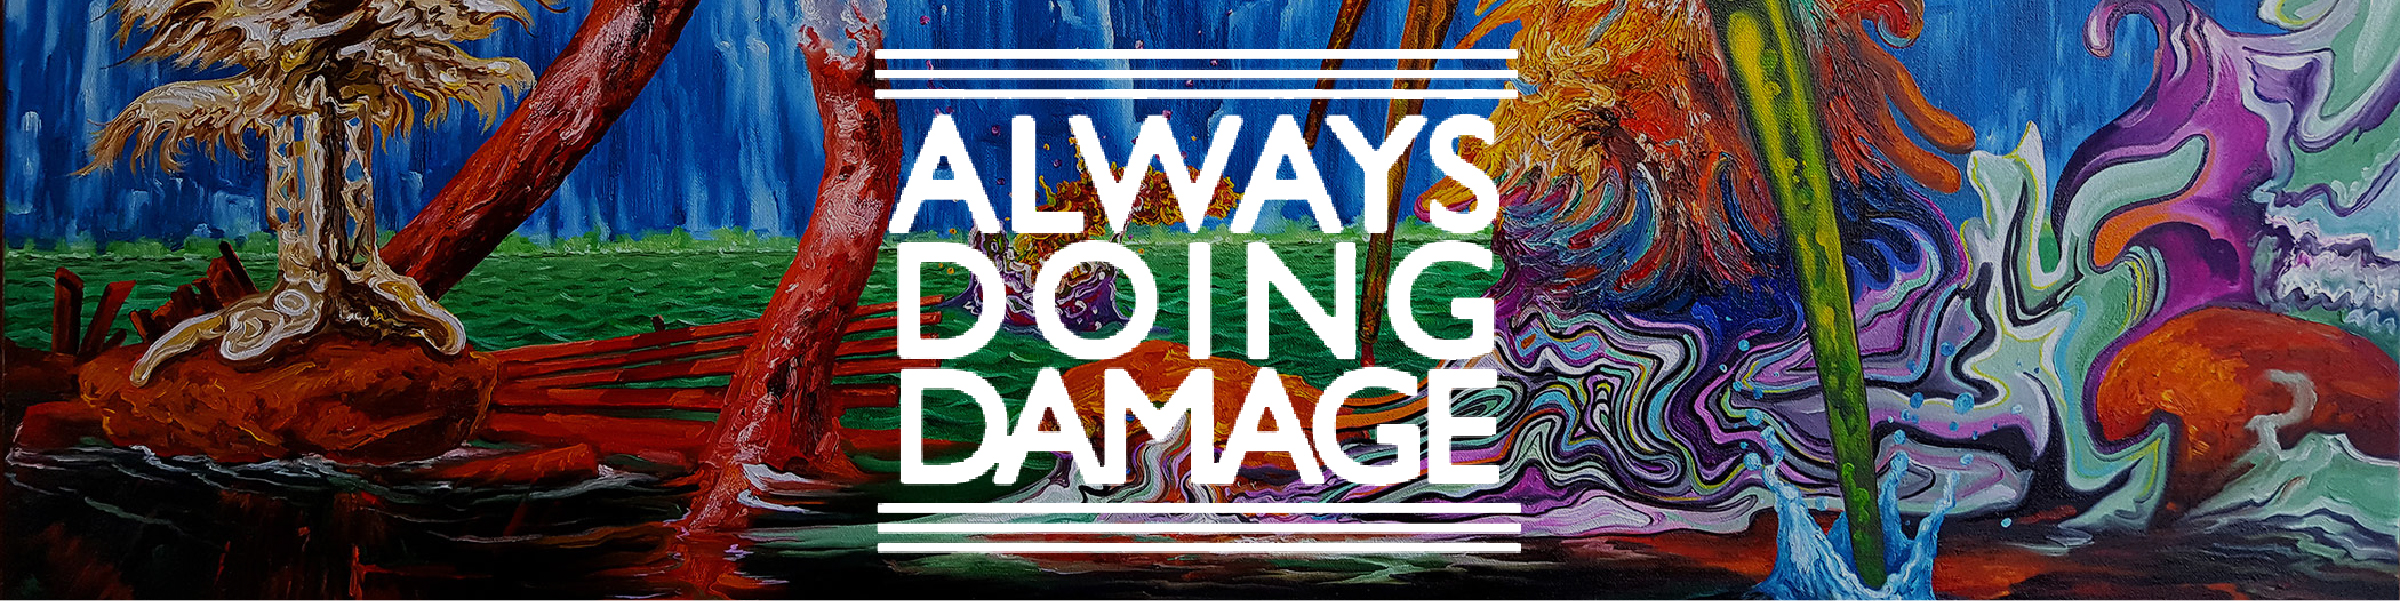 """""""This fair may cause a serious shift in how art dealings take place in the near future.""""   - Always Doing Damage, 5.24.17"""